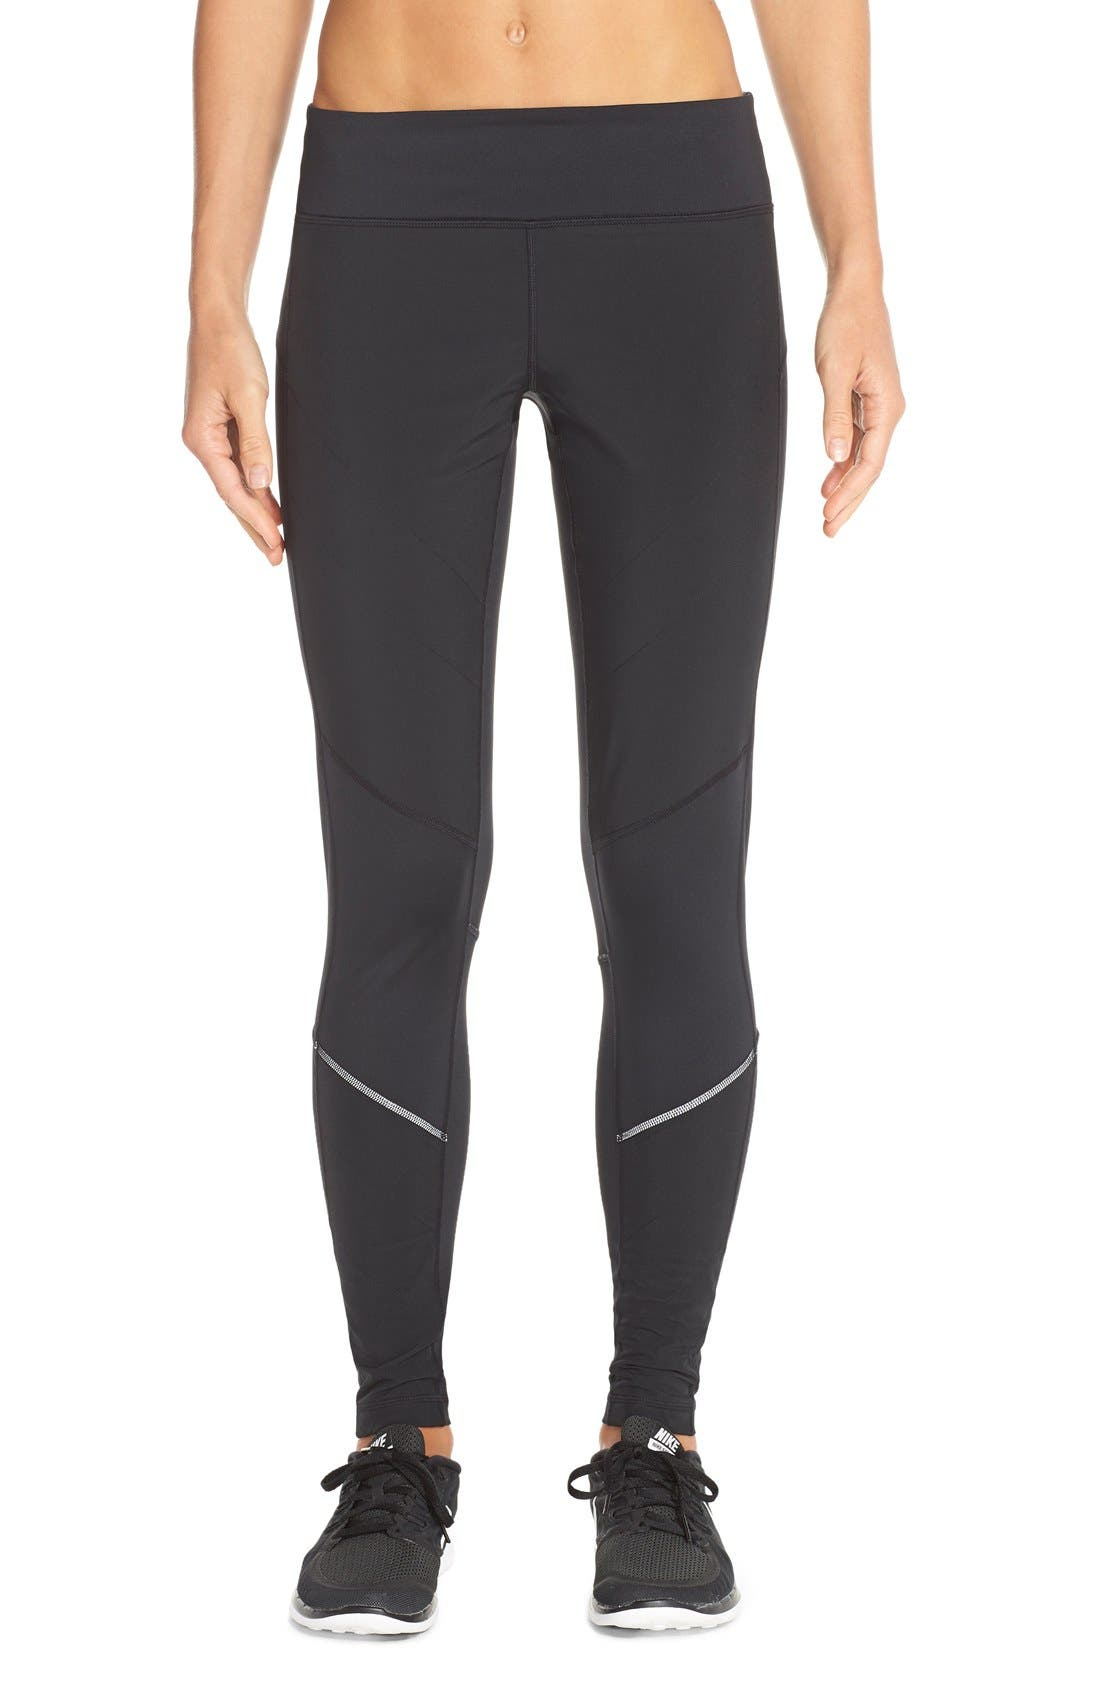 Main Image - Zella 'Chill Out' Running Tights